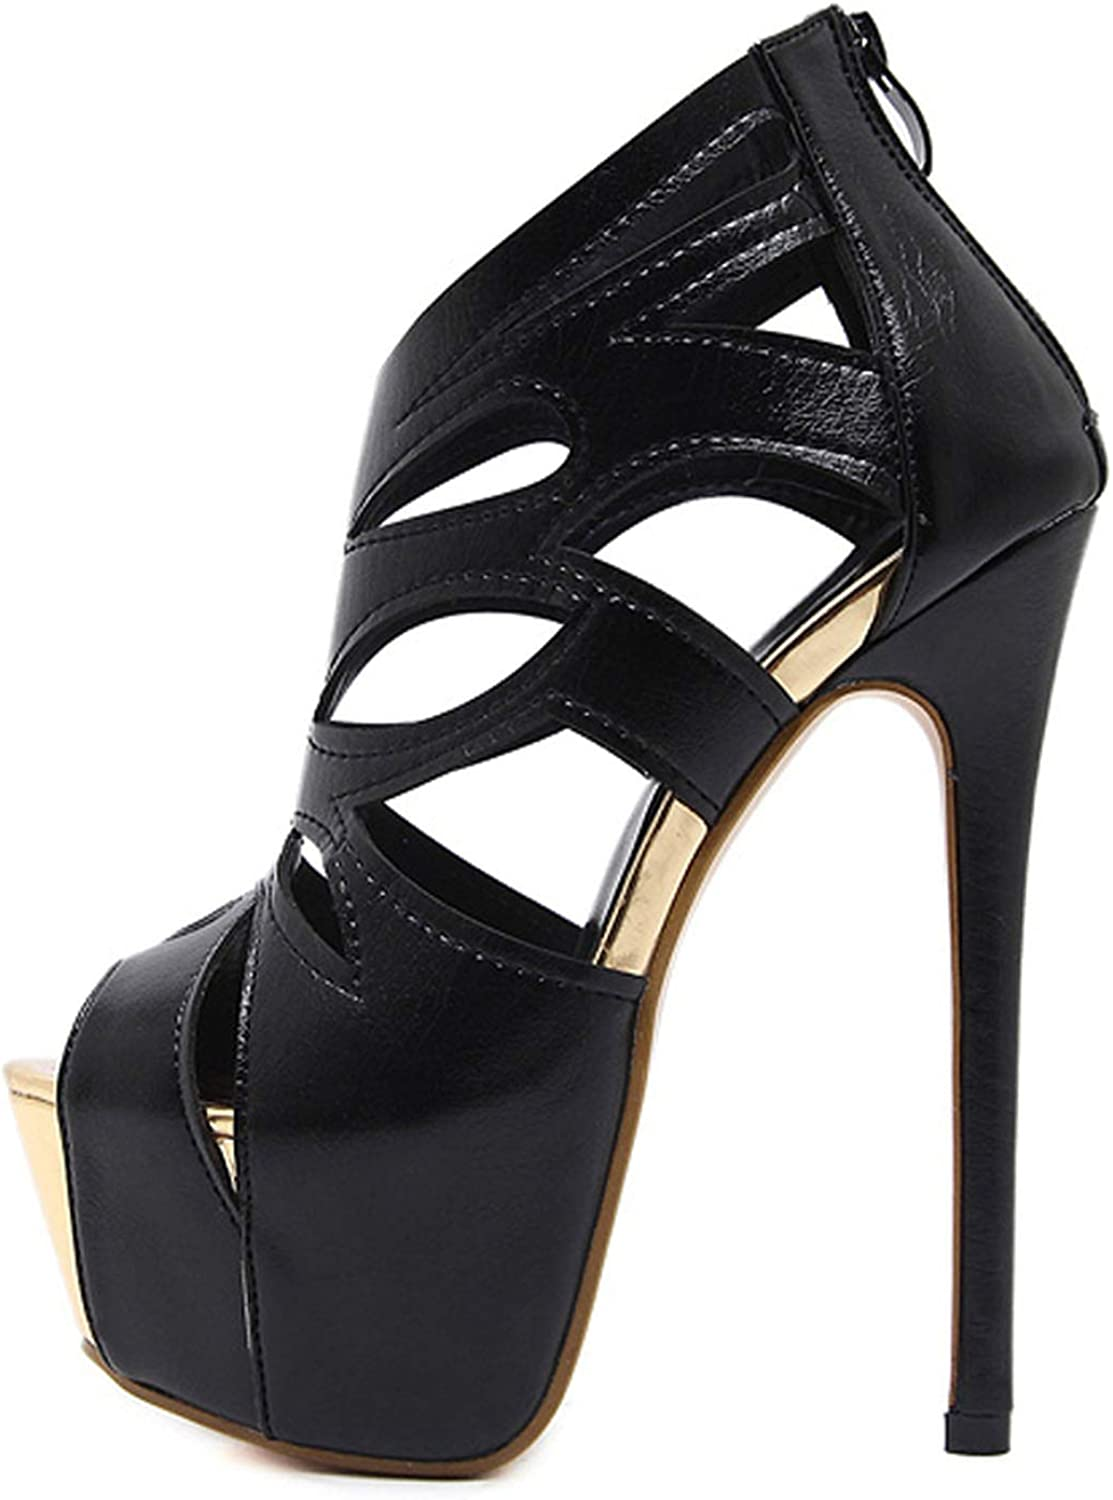 IOJHOIJOIJOIJMO Women Sandals Super High Heel Open The Toe Sandals Thick Heel Fashion Sexy High Heels Sandals shoes Black